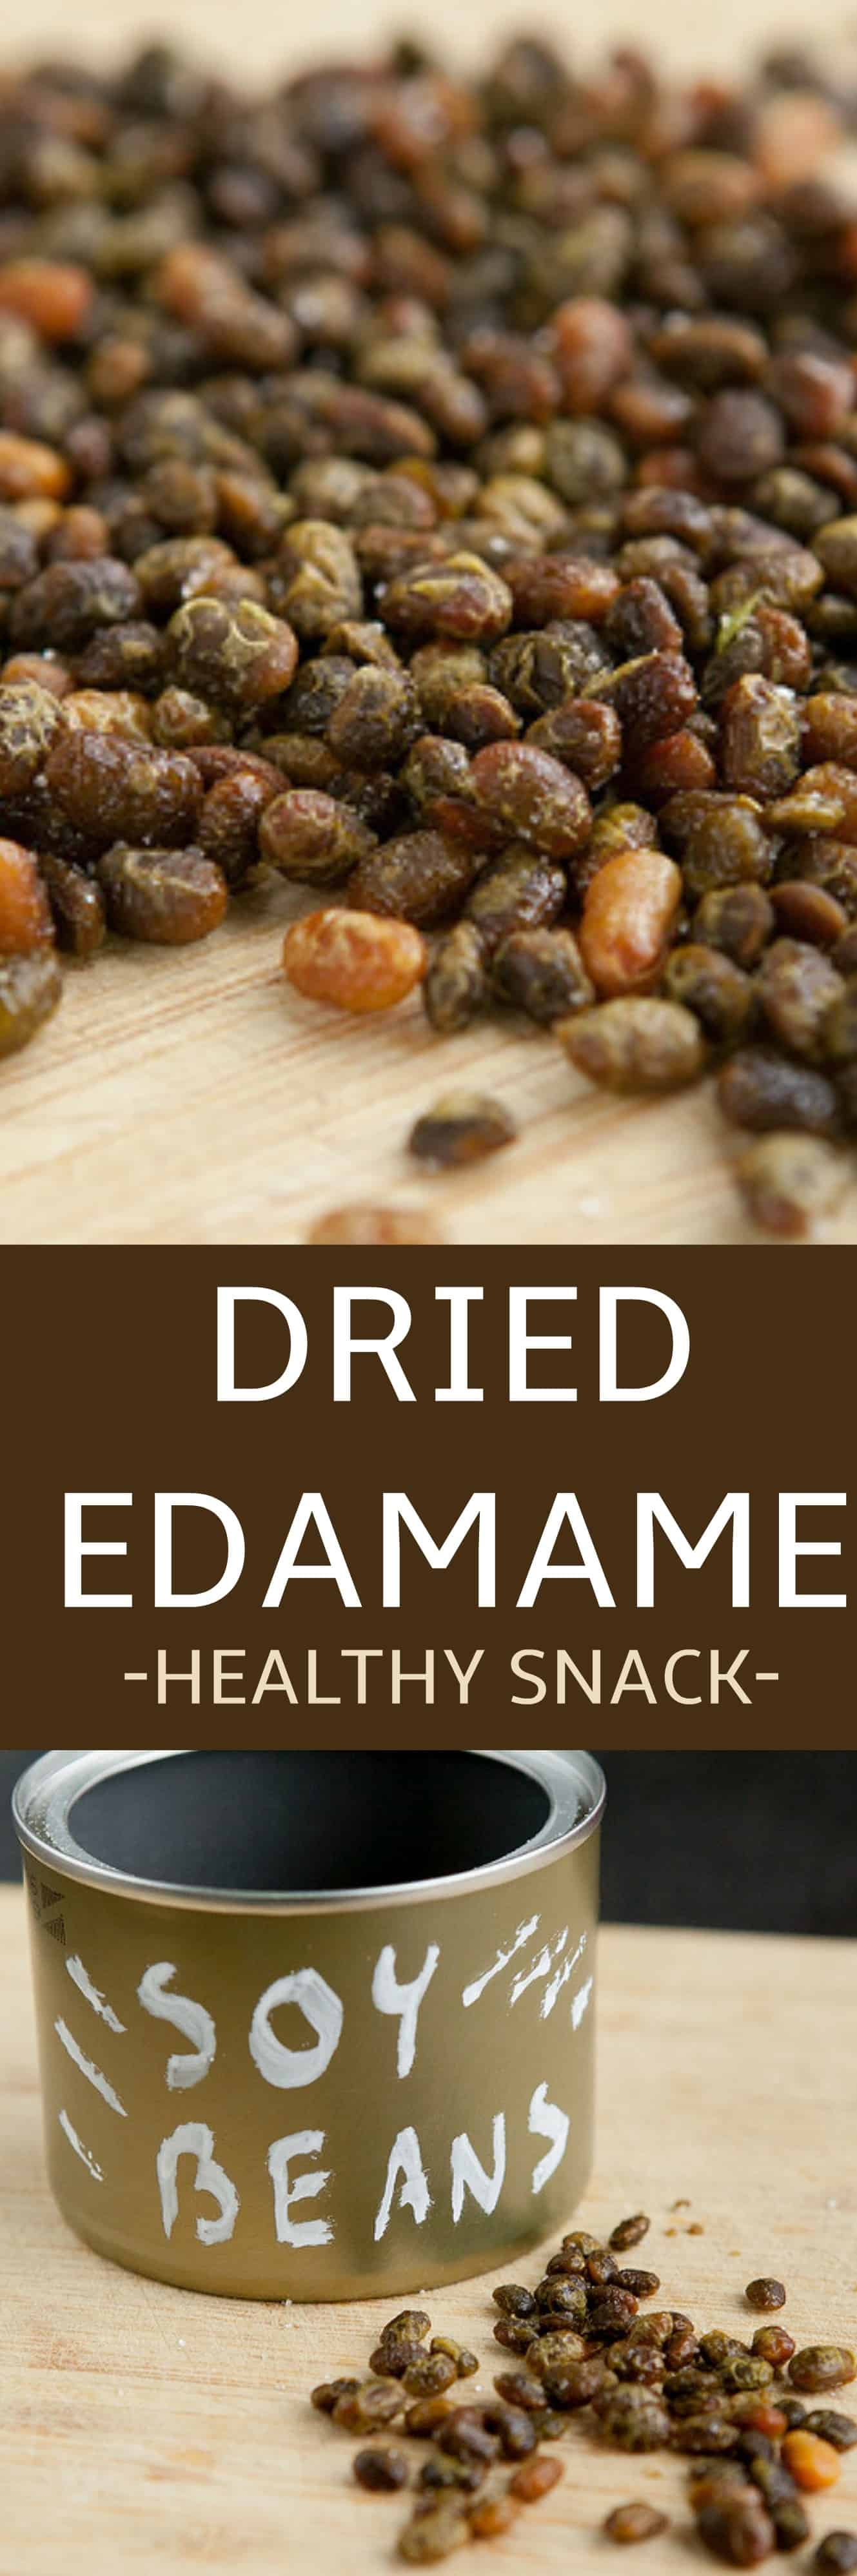 EASY to make dried edamame recipe using soybeans! This healthy edamame is slow roasted and salted! If you're growing soybeans this year you need to make this snack!